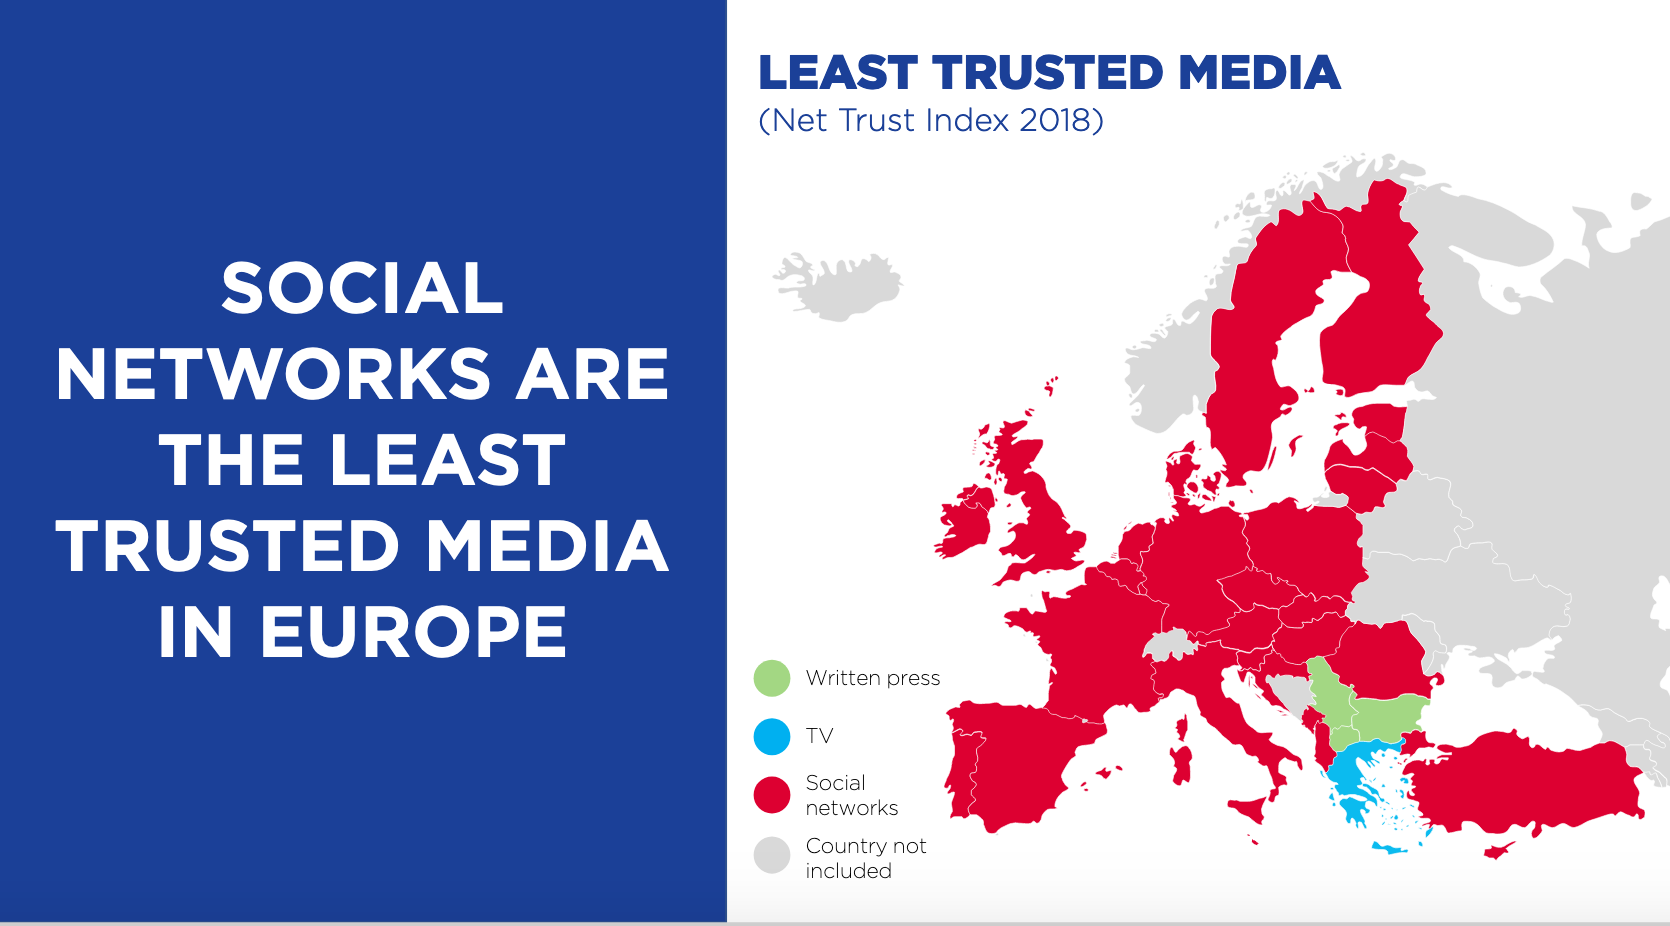 Least trusted media - EBU 2019